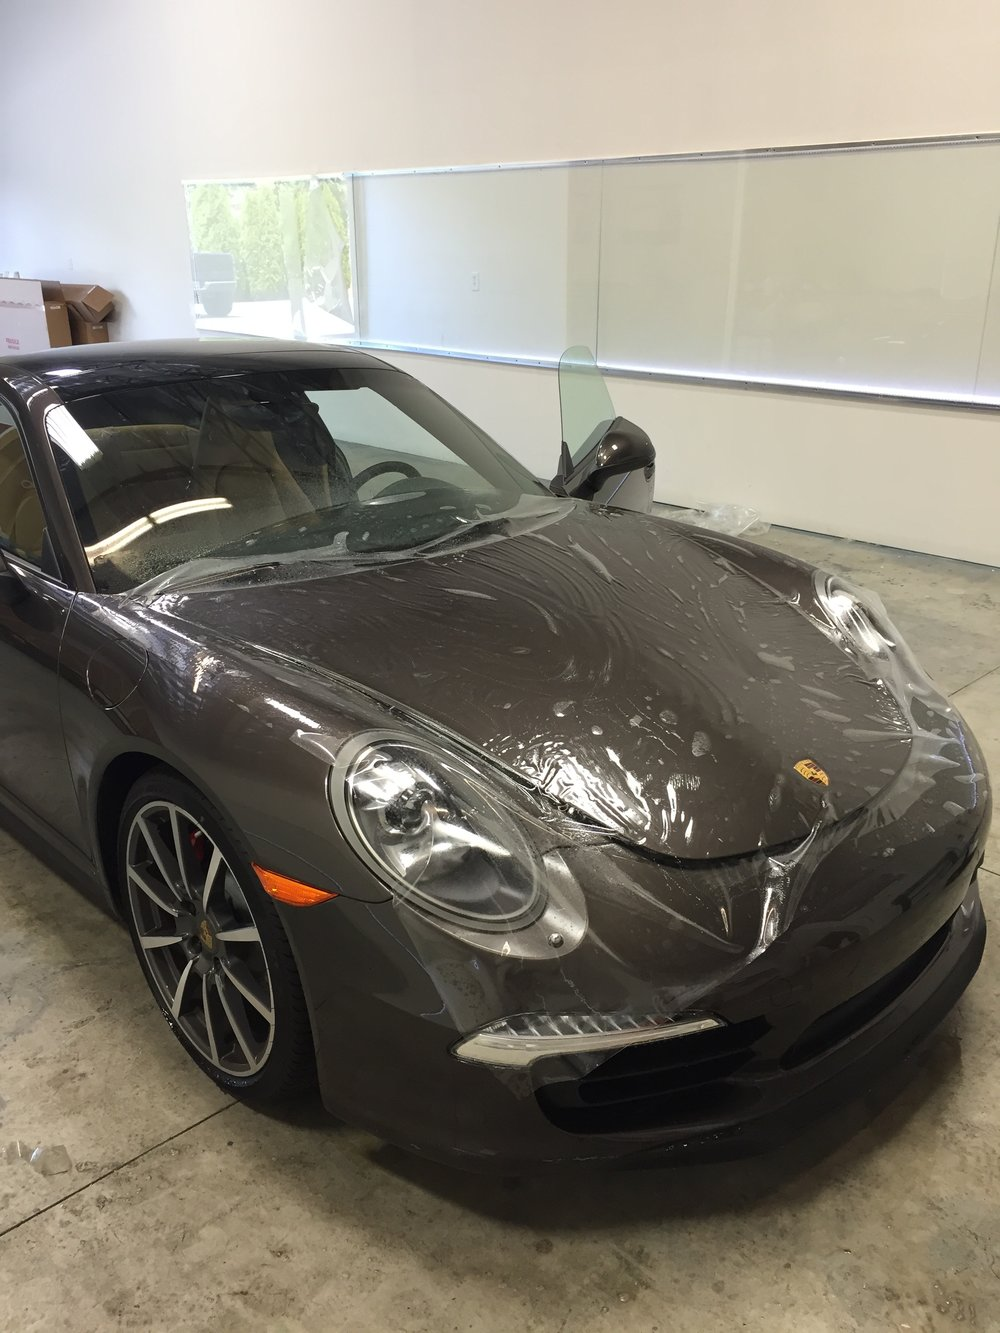 Window-Tint Reno-Porsche-Clearbra.JPG